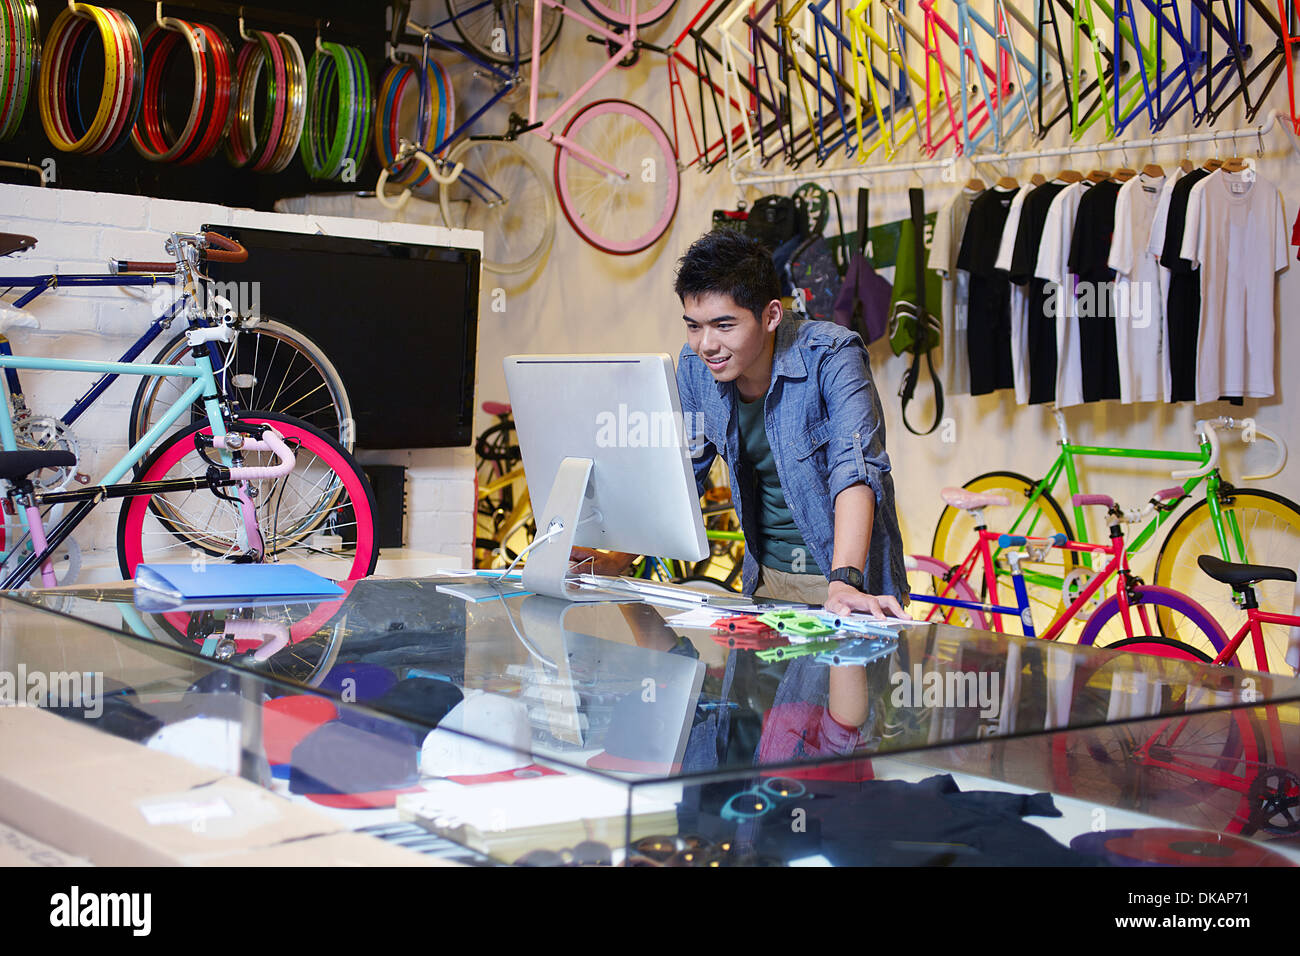 Young man in bike shop using computer - Stock Image